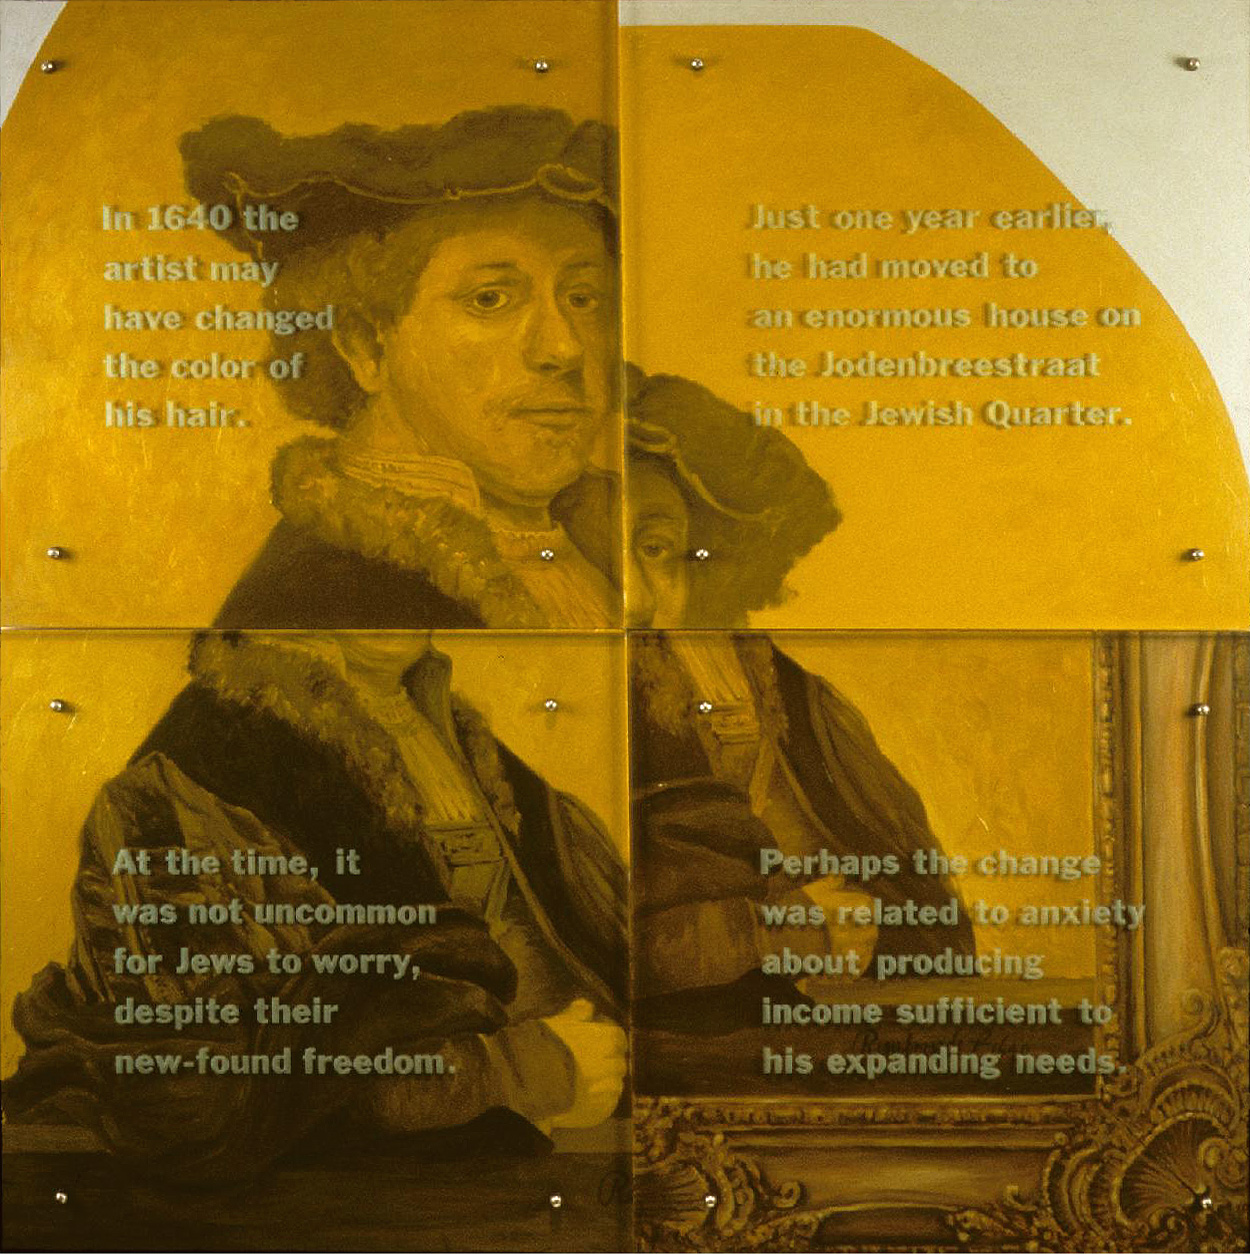 "In 1640 the artist may have changed the color of his hair, 60"" X 60"" (153cm x 153cm) Four panels, oil on wood, sandblasted glass, bolts, After Rembrandt, Self-portrait, 1640 TEXT: In 1640 the artist may have changed the color of his hair. Just one year earlier, he had moved to an enormous house on the Jodenbreestraat in the Jewish Quarter. At the time, it was not uncommon for Jews to worry, despite their new-found freedom. Perhaps the change was related to anxiety about producing income sufficient to his expanding needs."